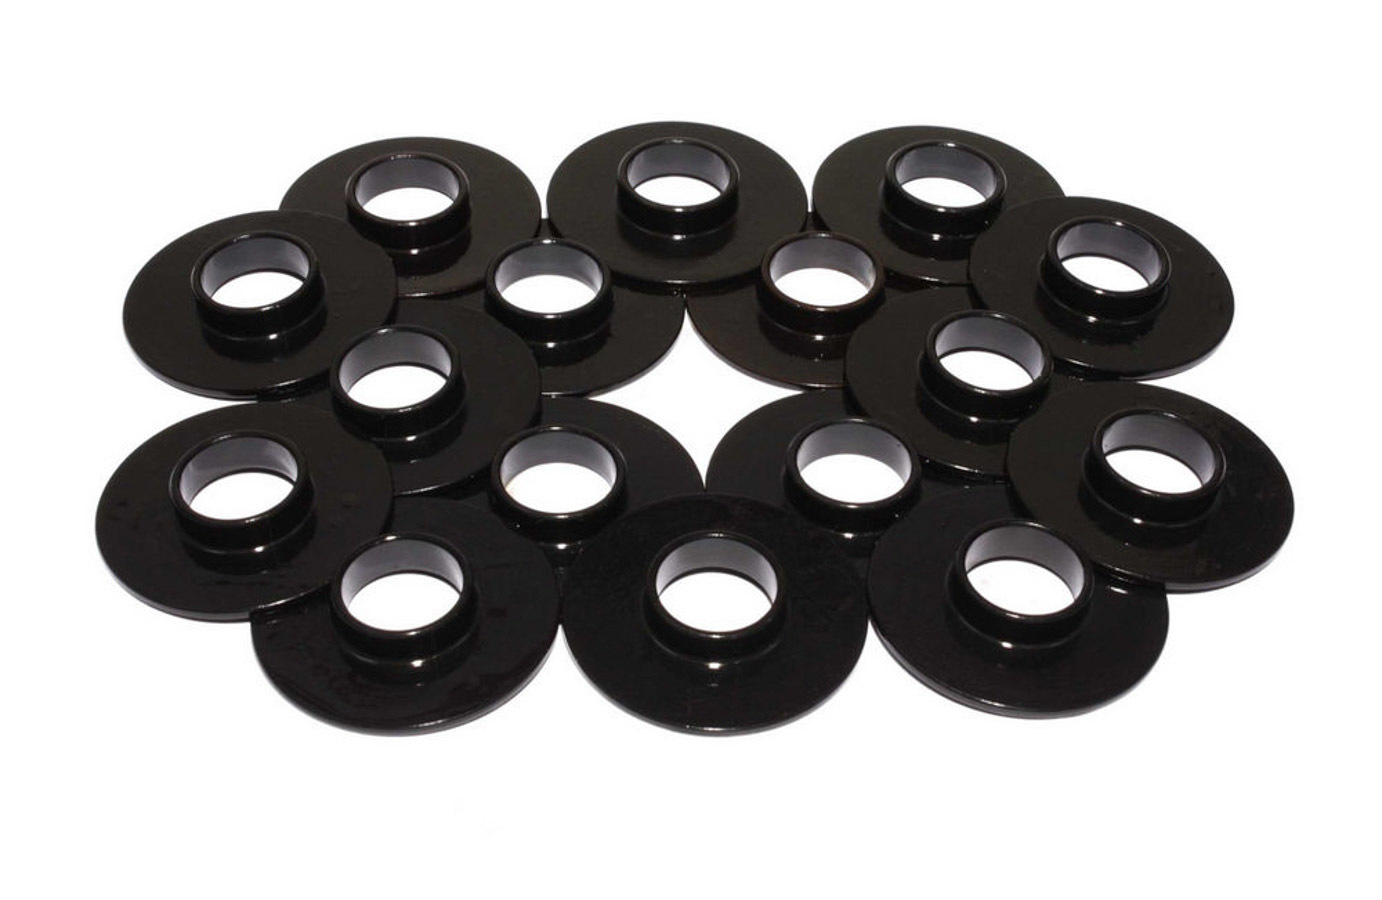 Comp Cams 4784-16 Valve Spring Locator, Inside, 0.060 in Thick, 1.500 in OD, 0.570 in ID, 0.735 in Spring ID, Steel, Set of 16